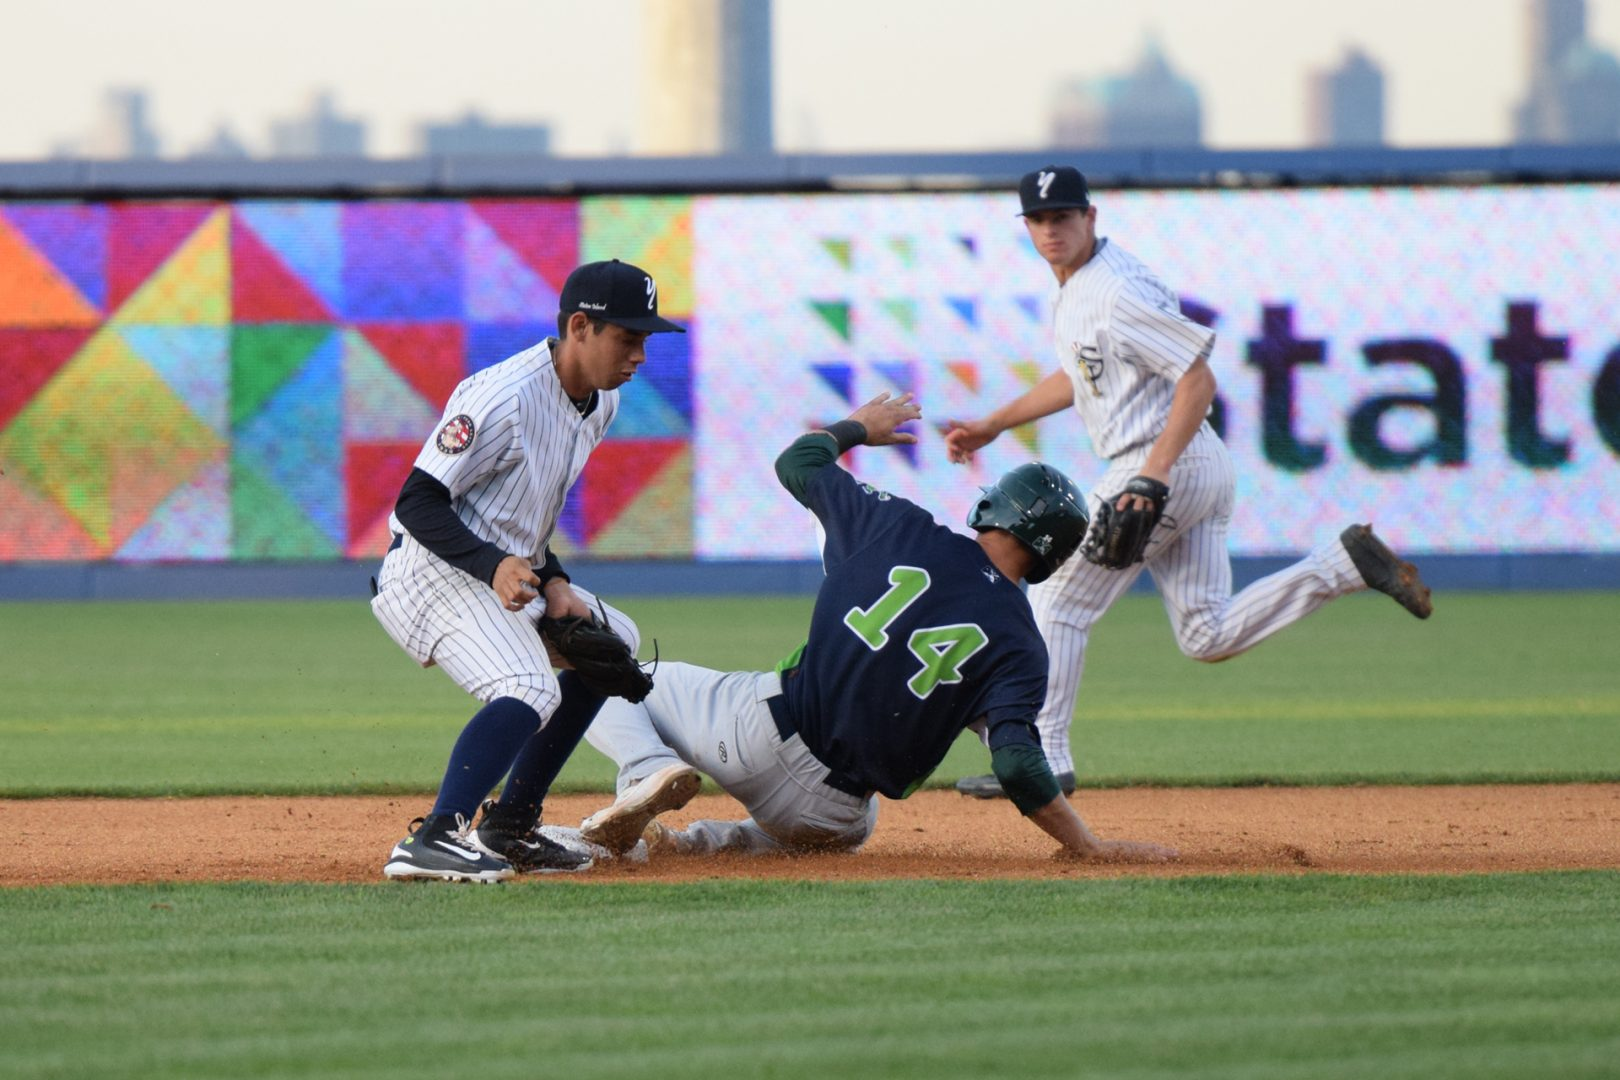 Vermont's Steven Pallares steals second base in the first inning (Robert M. Pimpsner)